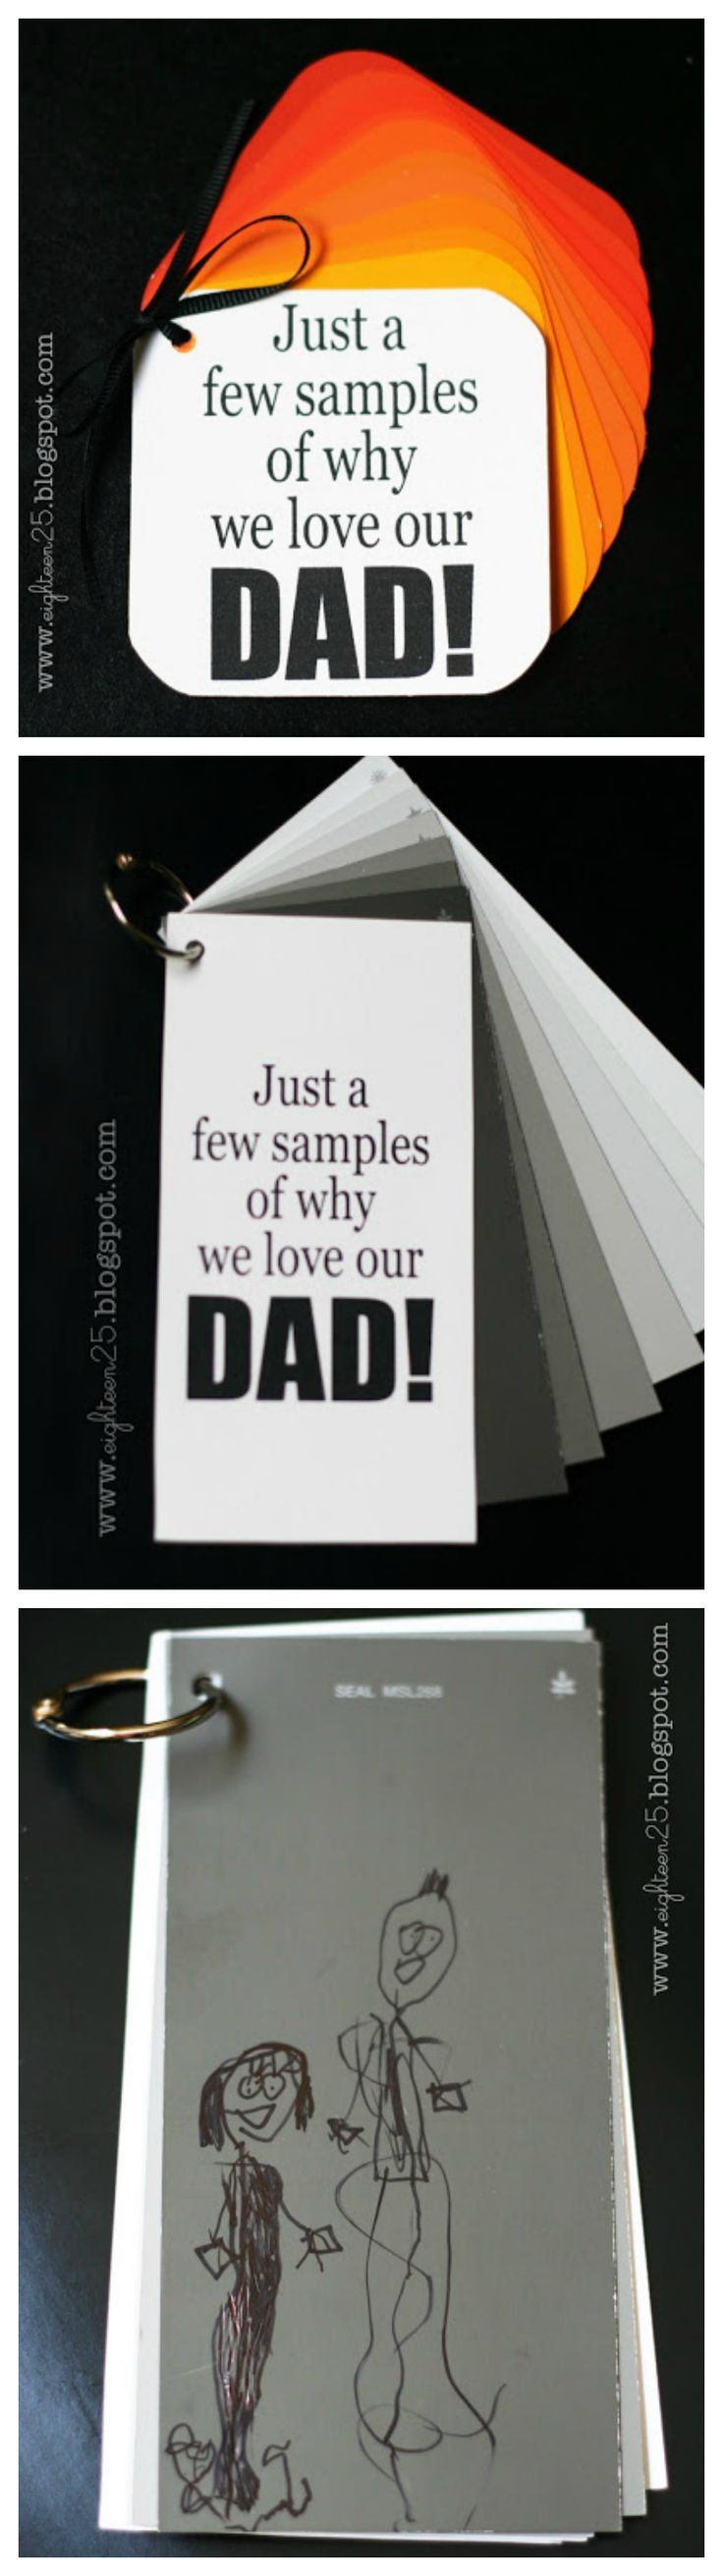 Just a few samples of why we love our Dad! | Such a sweet gift idea using paint sample cards